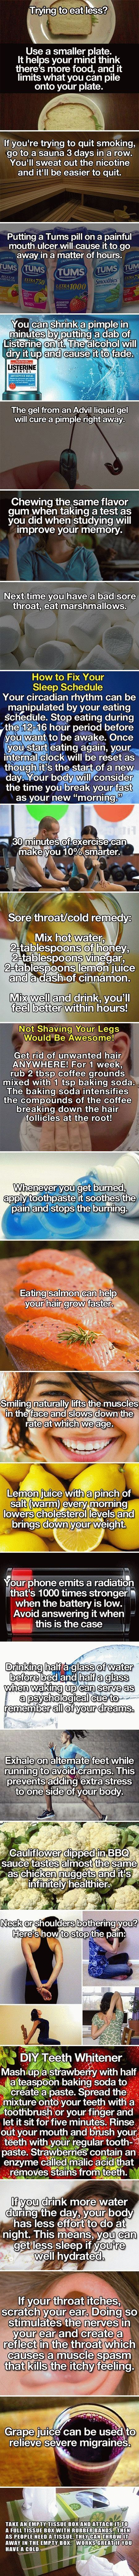 24 CREATIVE AND USEFUL HEALTH LIFE HACKS YOU CAN START TRYING NOW